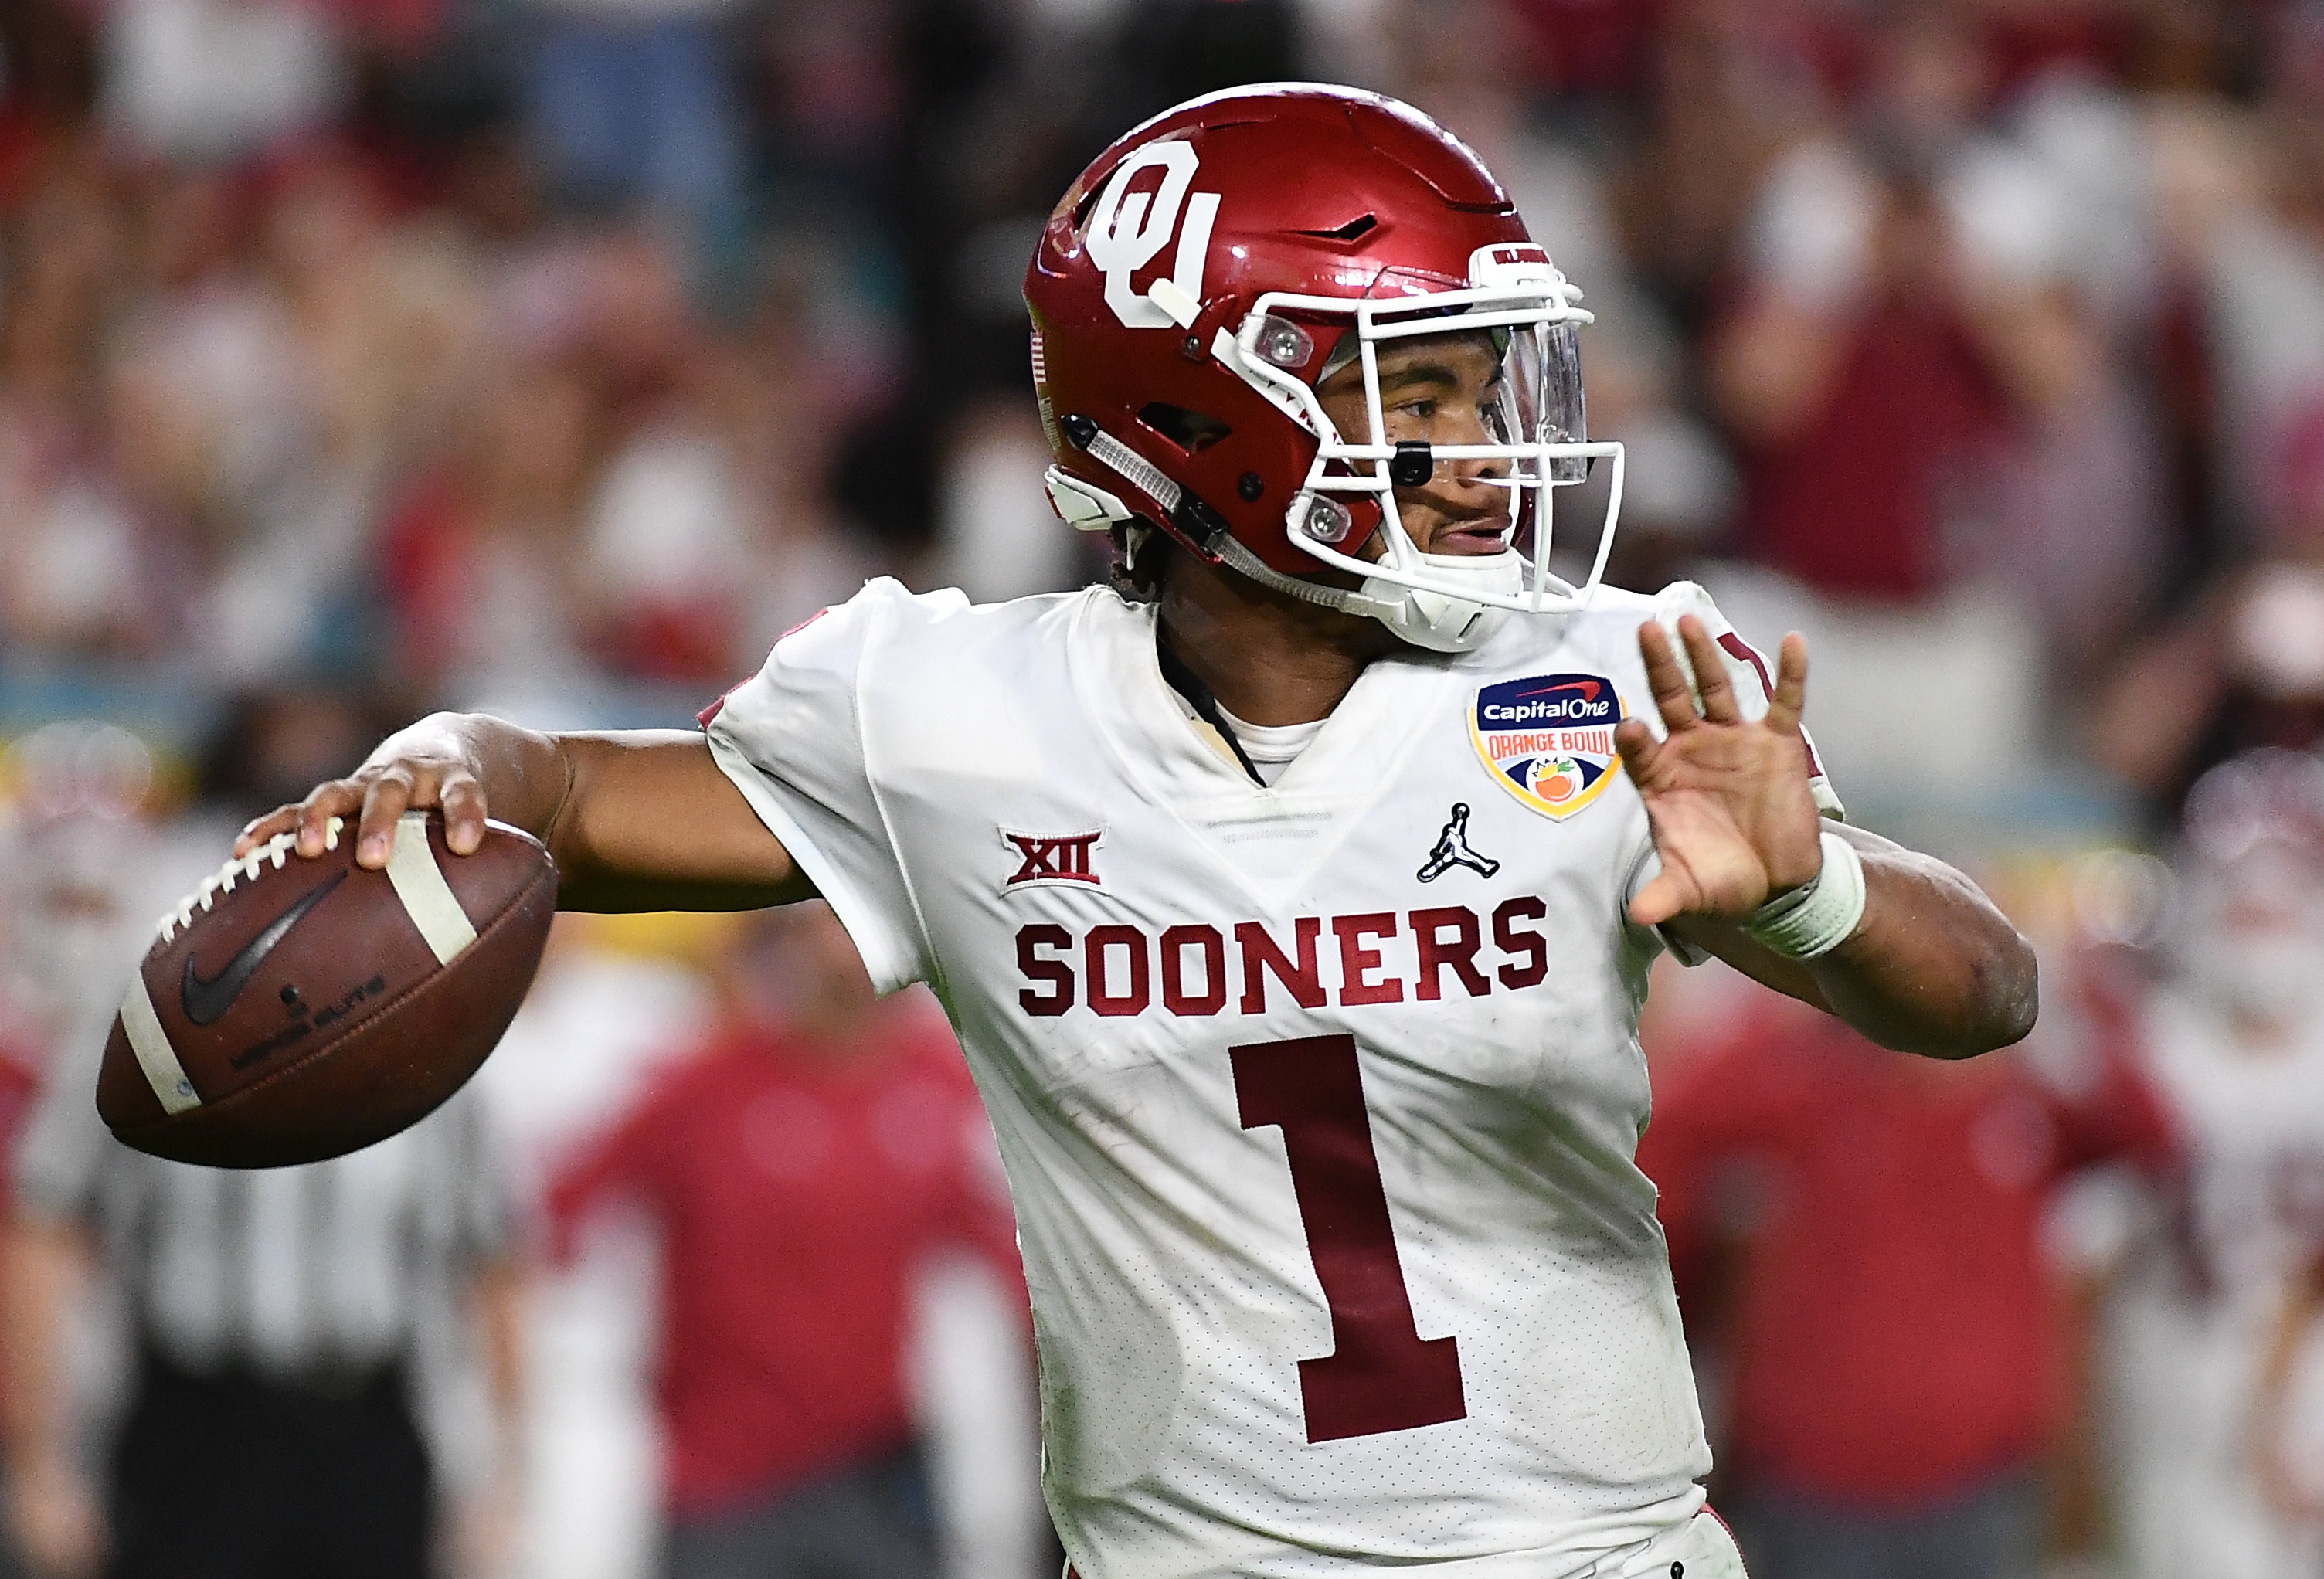 Dec 29, 2018; Miami Gardens, FL, USA; Oklahoma Sooners quarterback Kyler Murray (1) throws against the Alabama Crimson Tide during the fourth quarter of the 2018 Orange Bowl college football playoff semifinal game at Hard Rock Stadium. Mandatory Credit: Jasen Vinlove-USA TODAY Sports